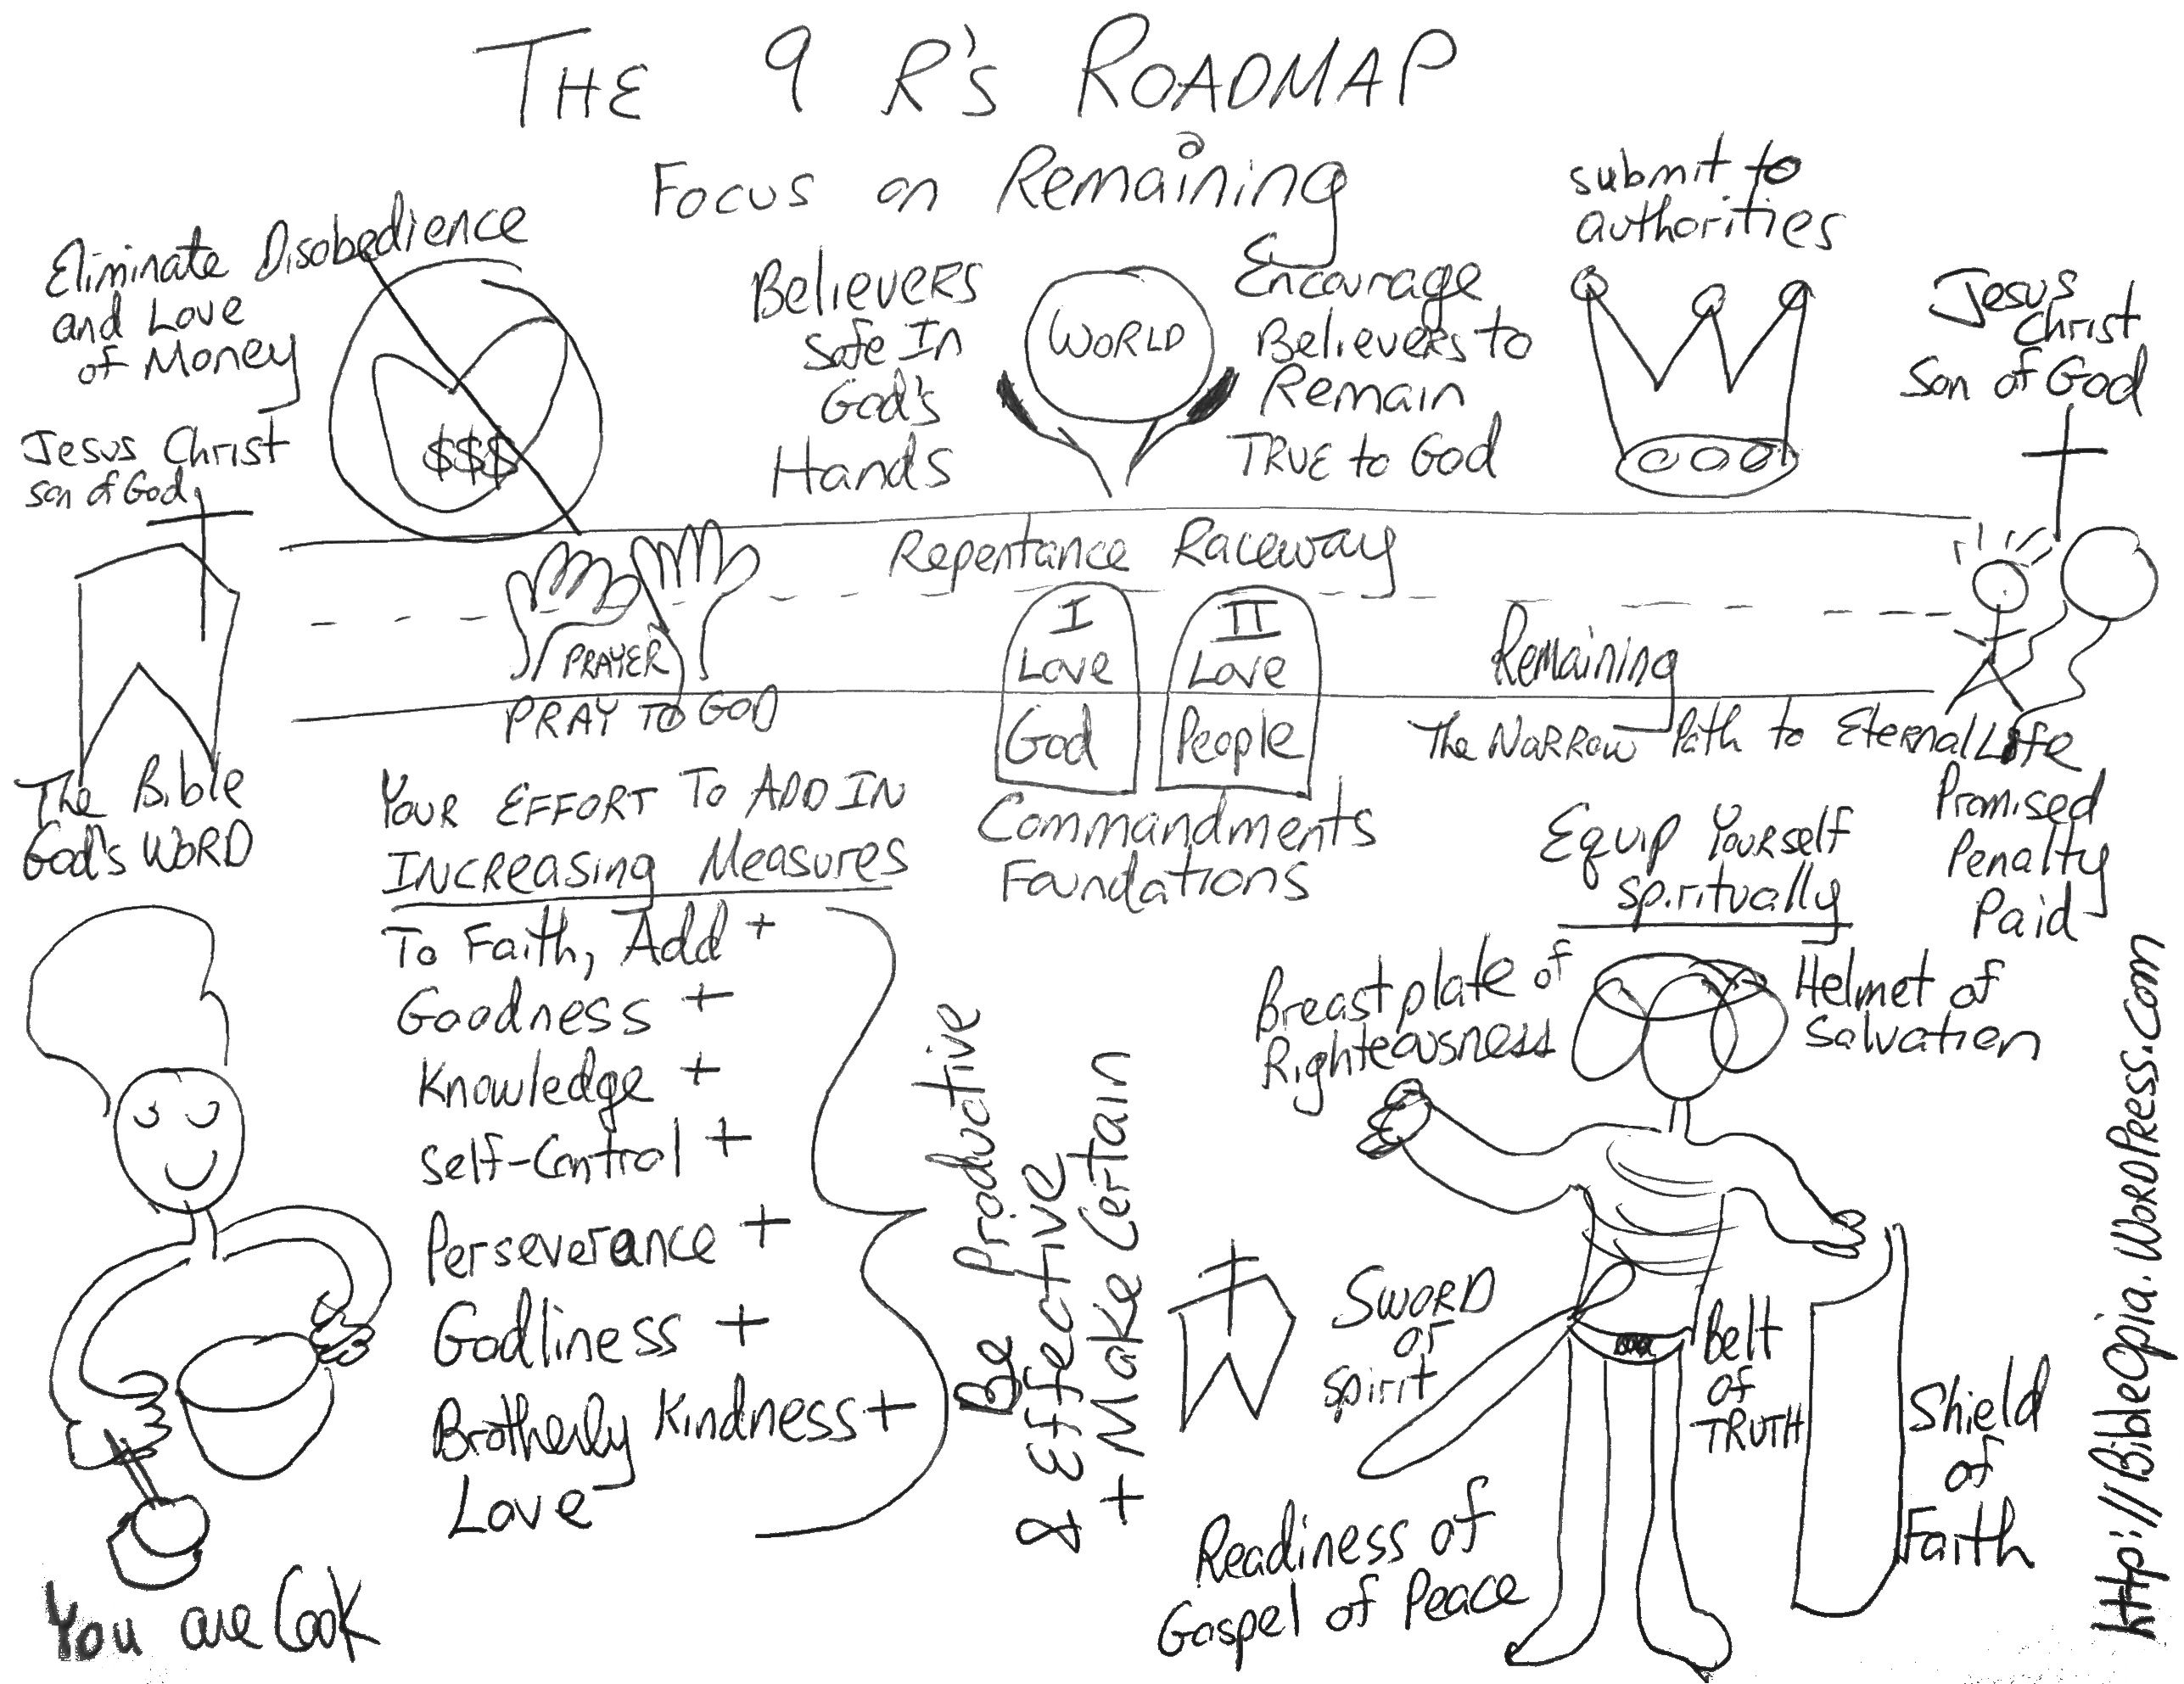 Drawn road road map R's Remaining on Reapers Remaining